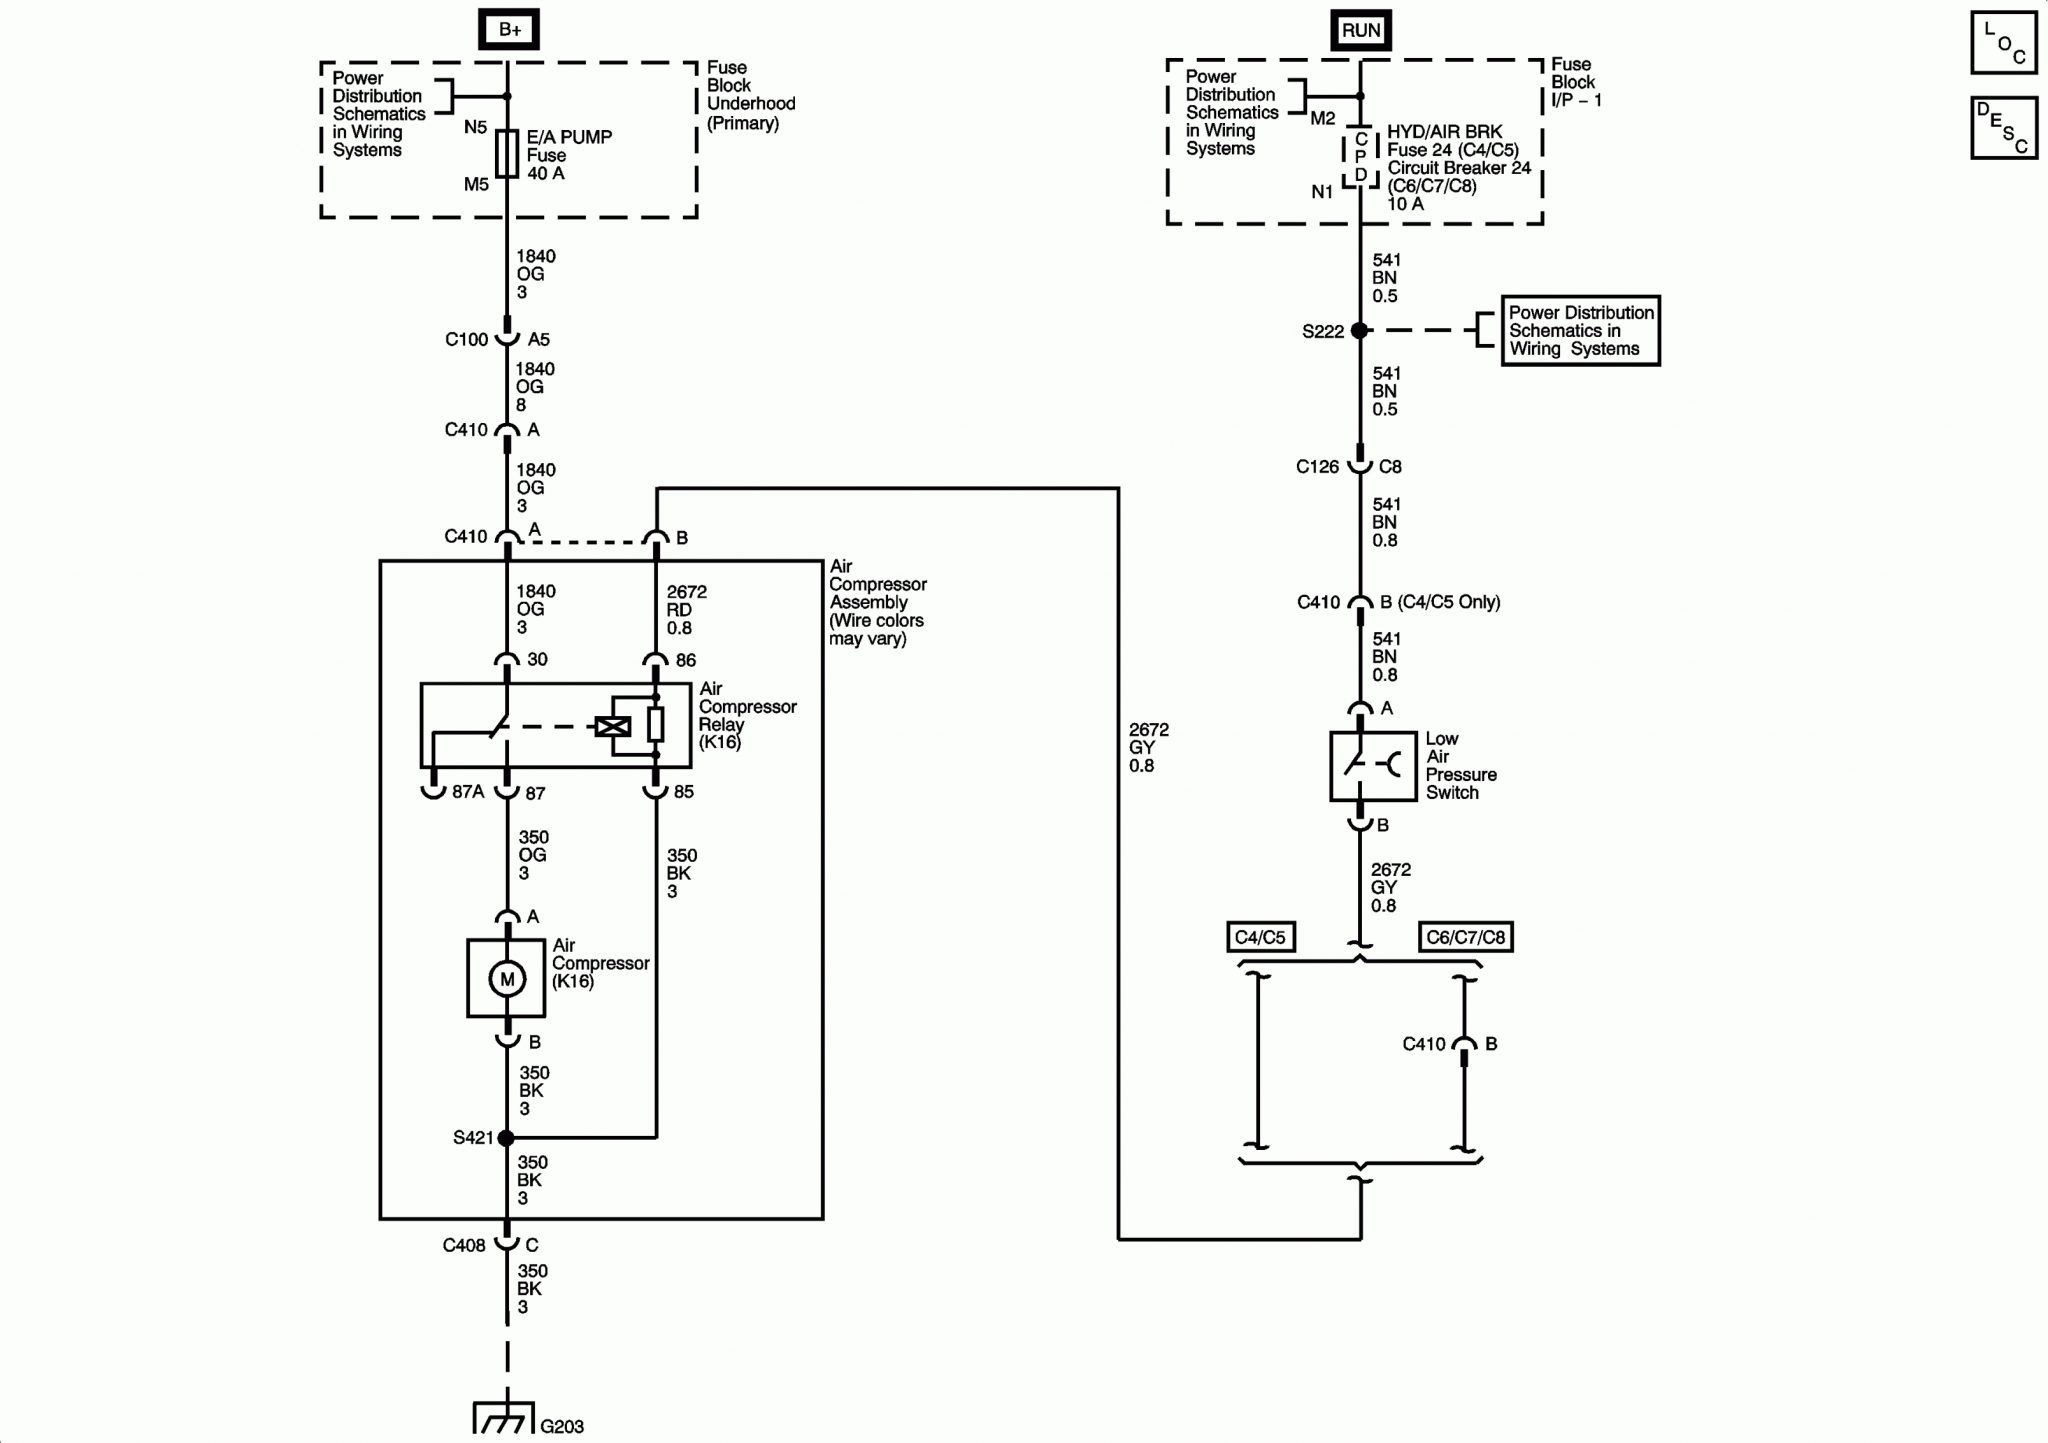 Square D Pressure Switch Wiring Diagram Square D Well Pump Pressure Switch Wiring Diagram Of Square D Pressure Switch Wiring Diagram